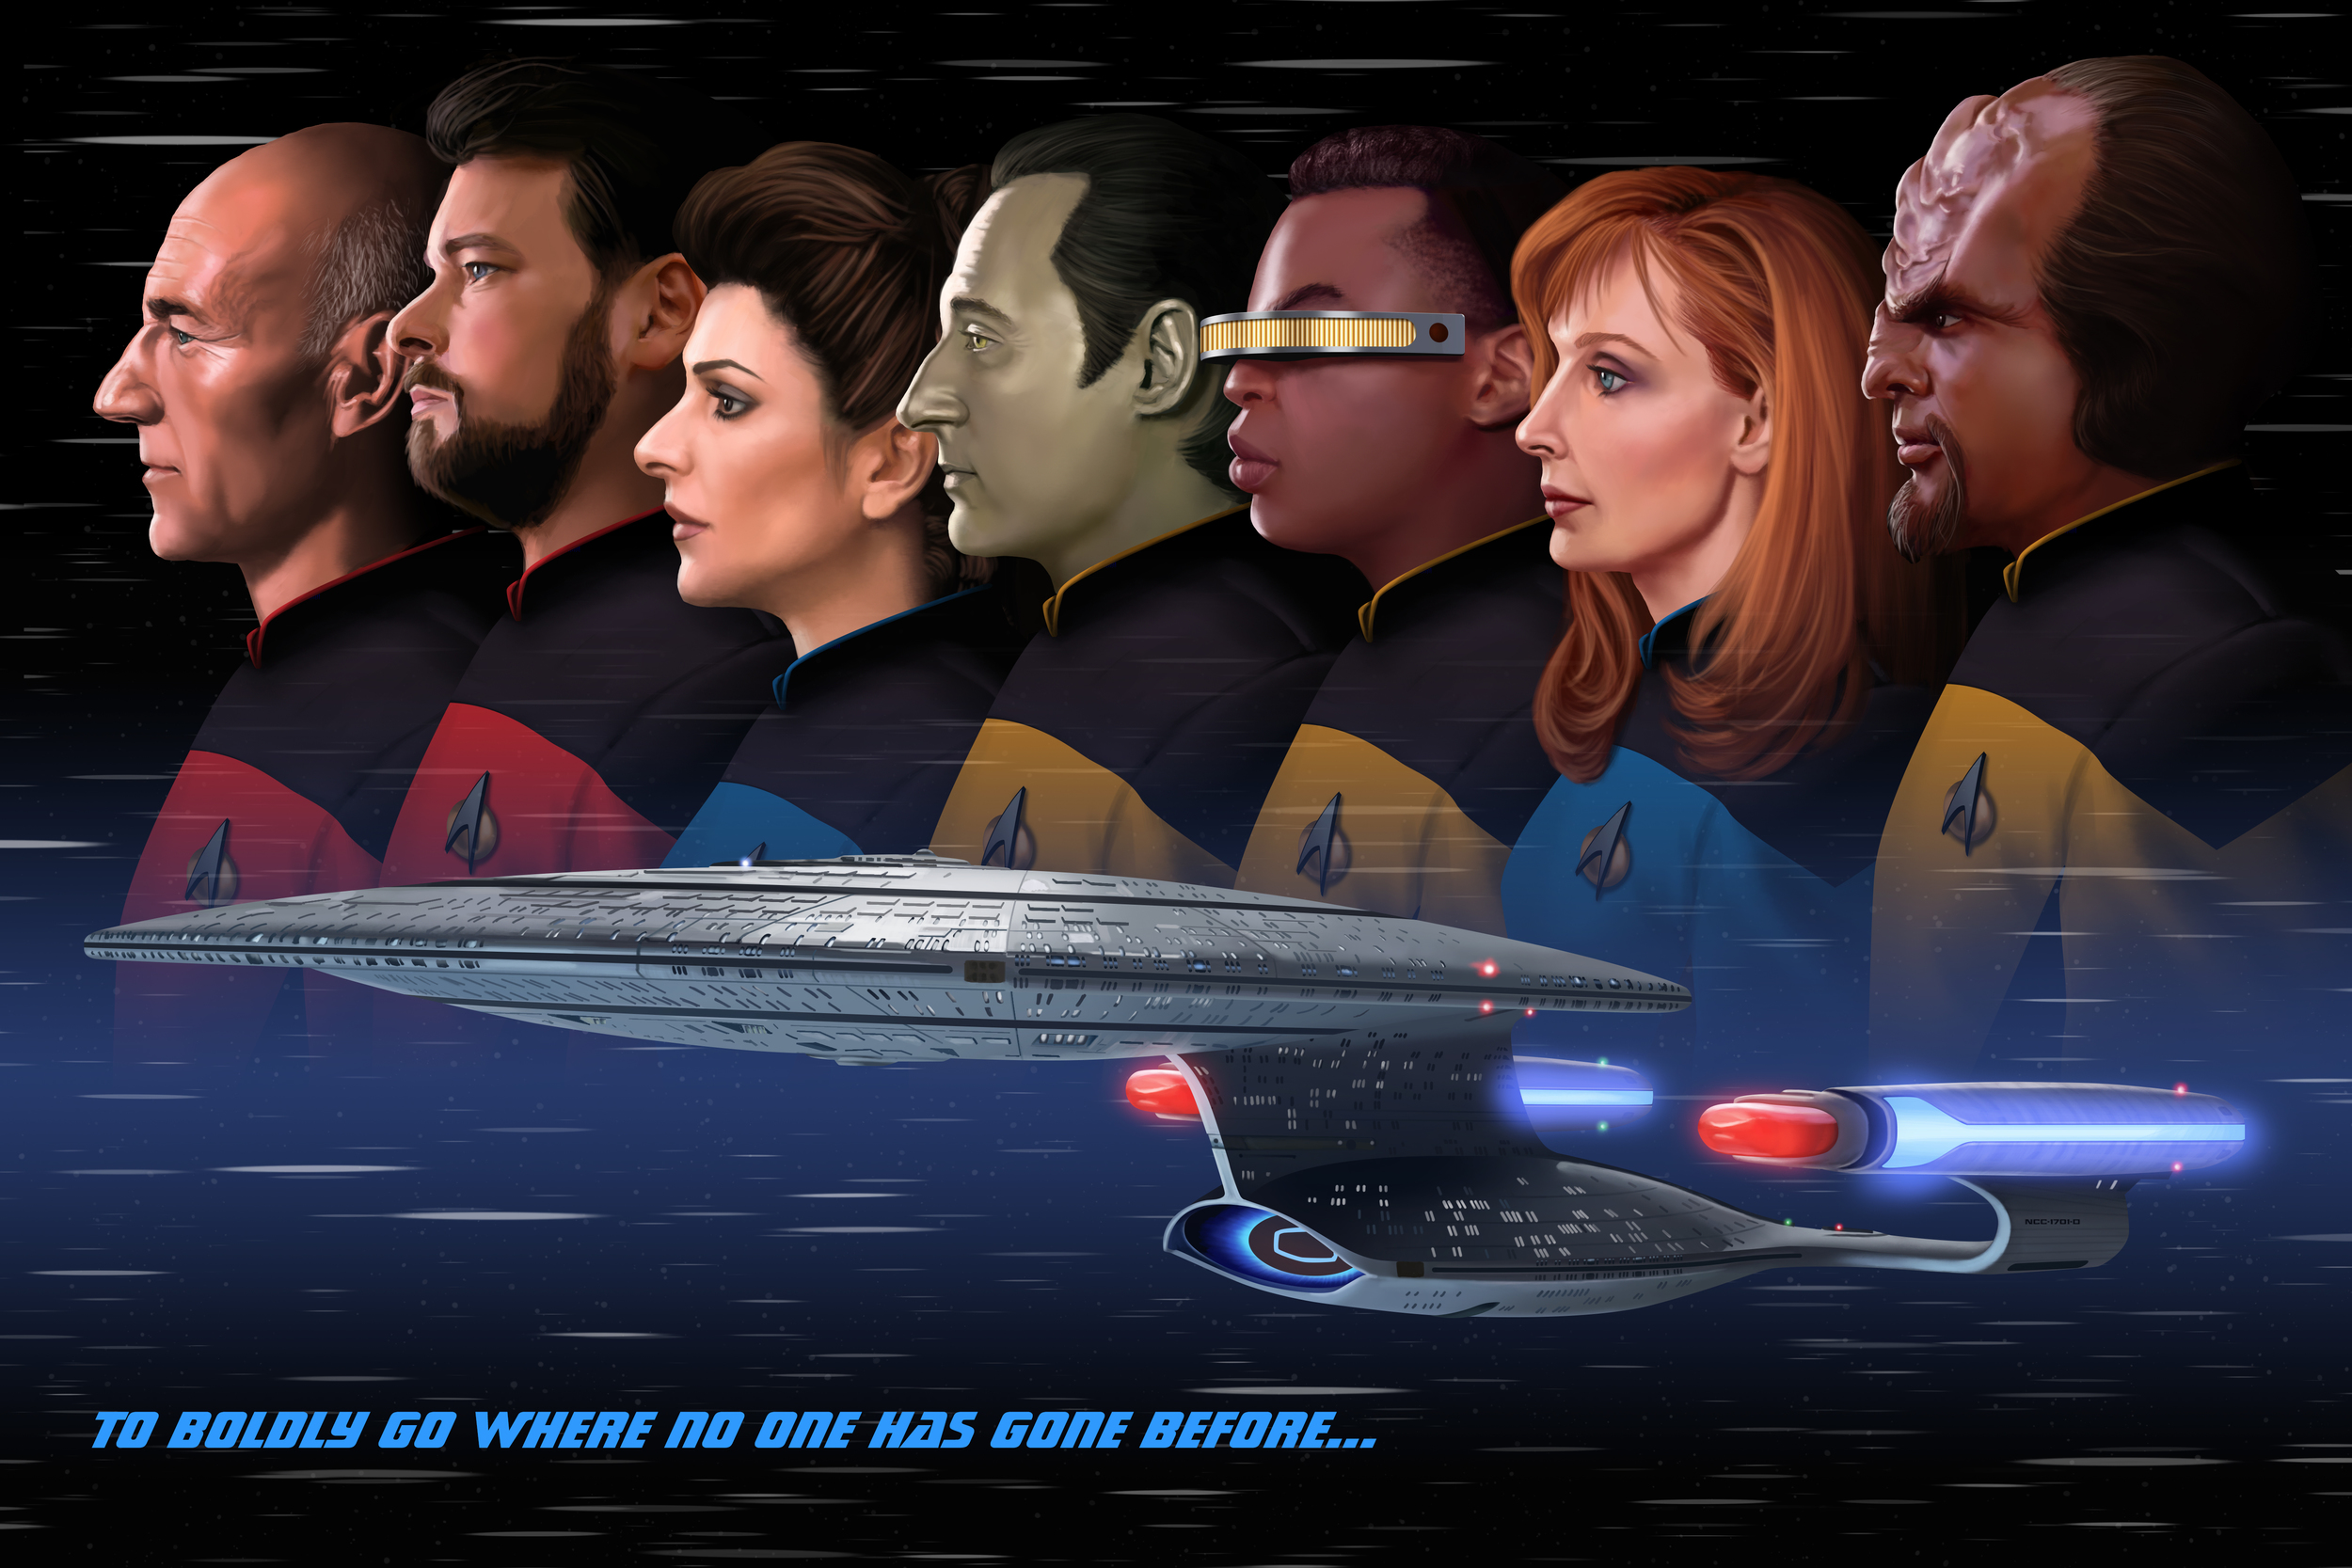 To Boldly Go Where No One has Gone Before